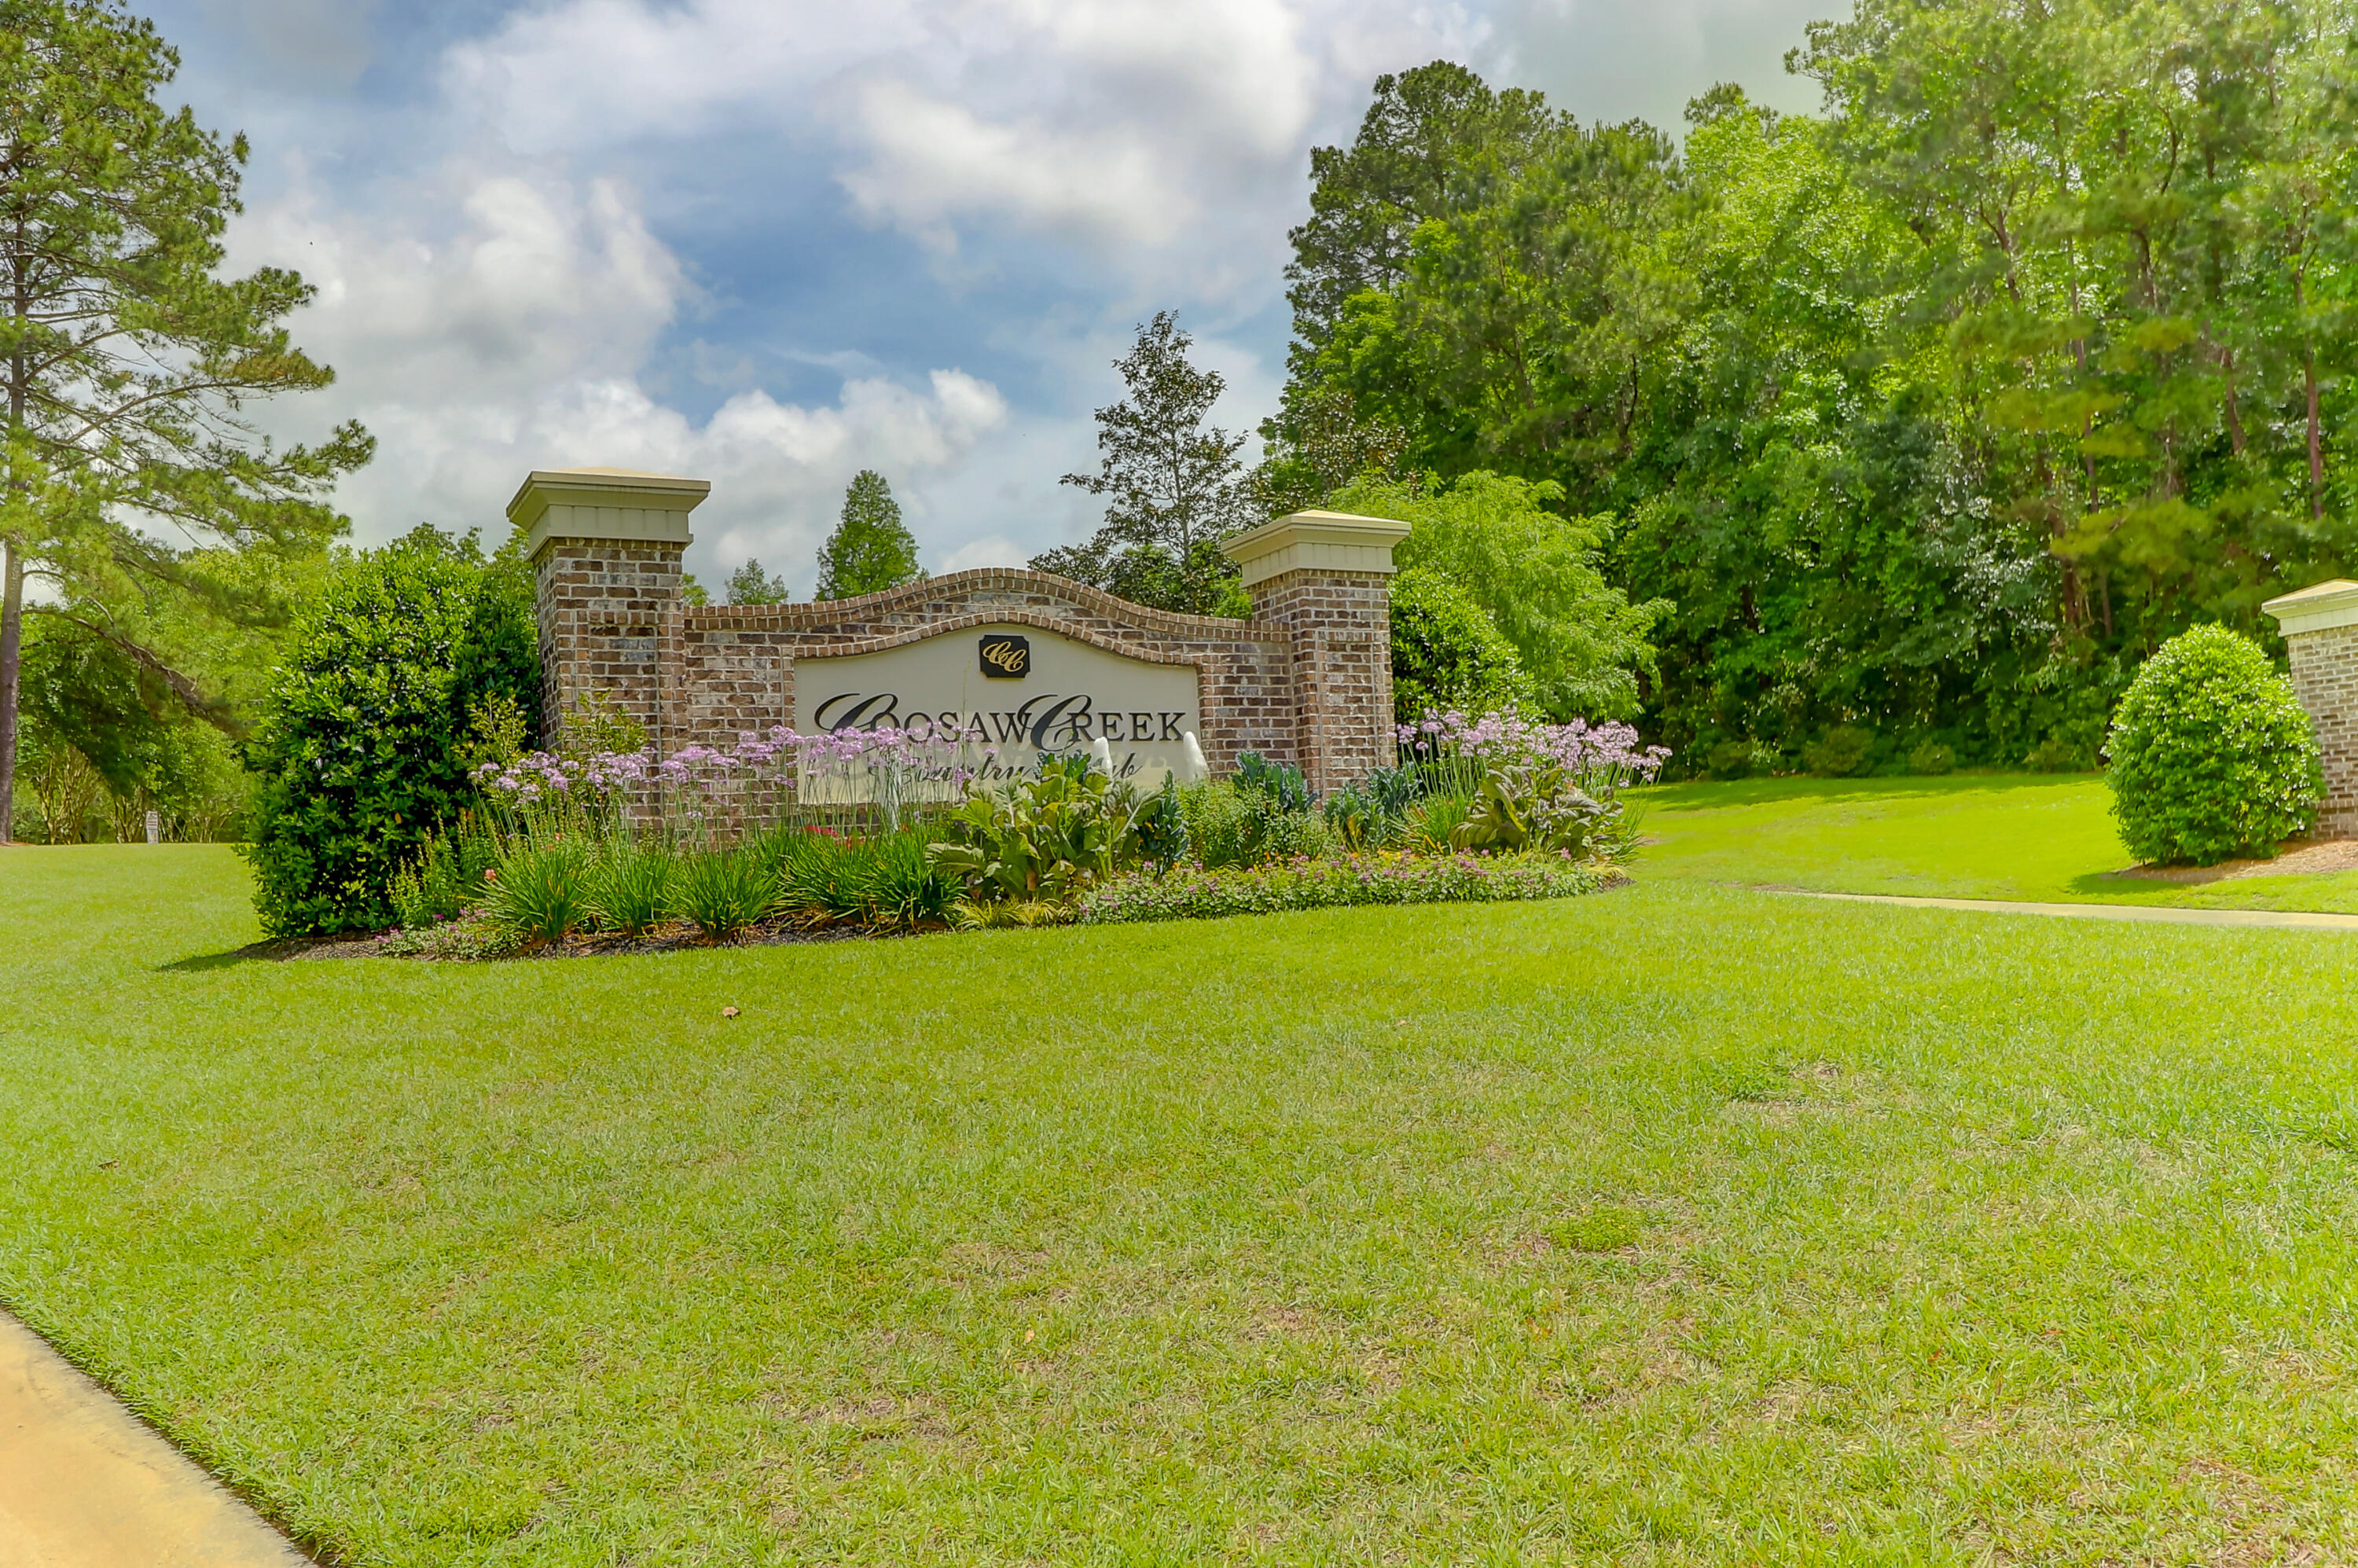 Coosaw Creek Country Club Homes For Sale - 8696 Fairway Woods, North Charleston, SC - 14